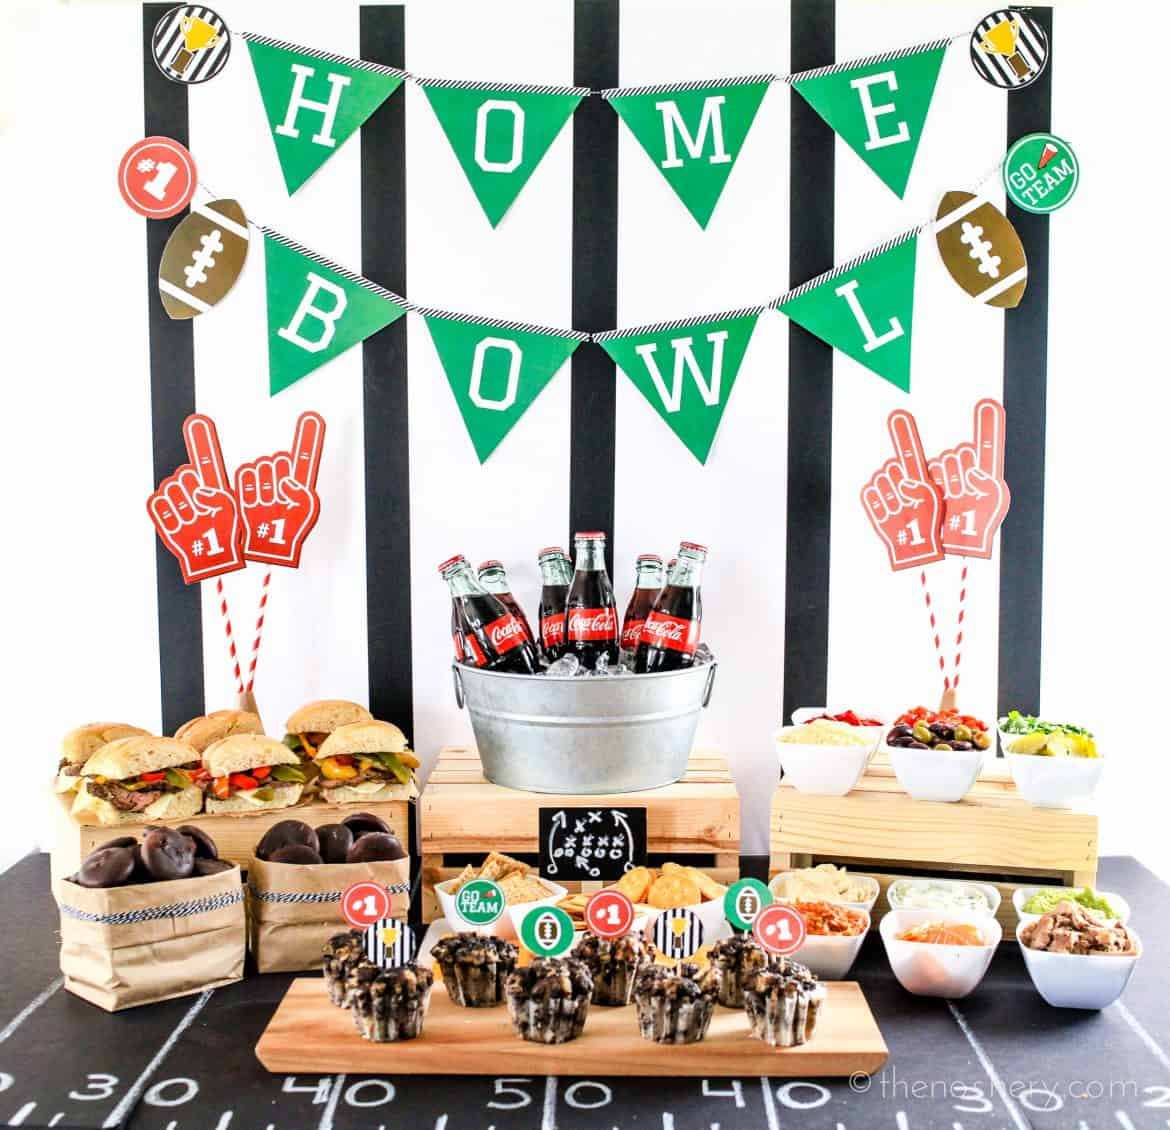 Ultimate Home Bowl Spread with Free Printables #HomeBowlHeroContest | TheNoshery.com